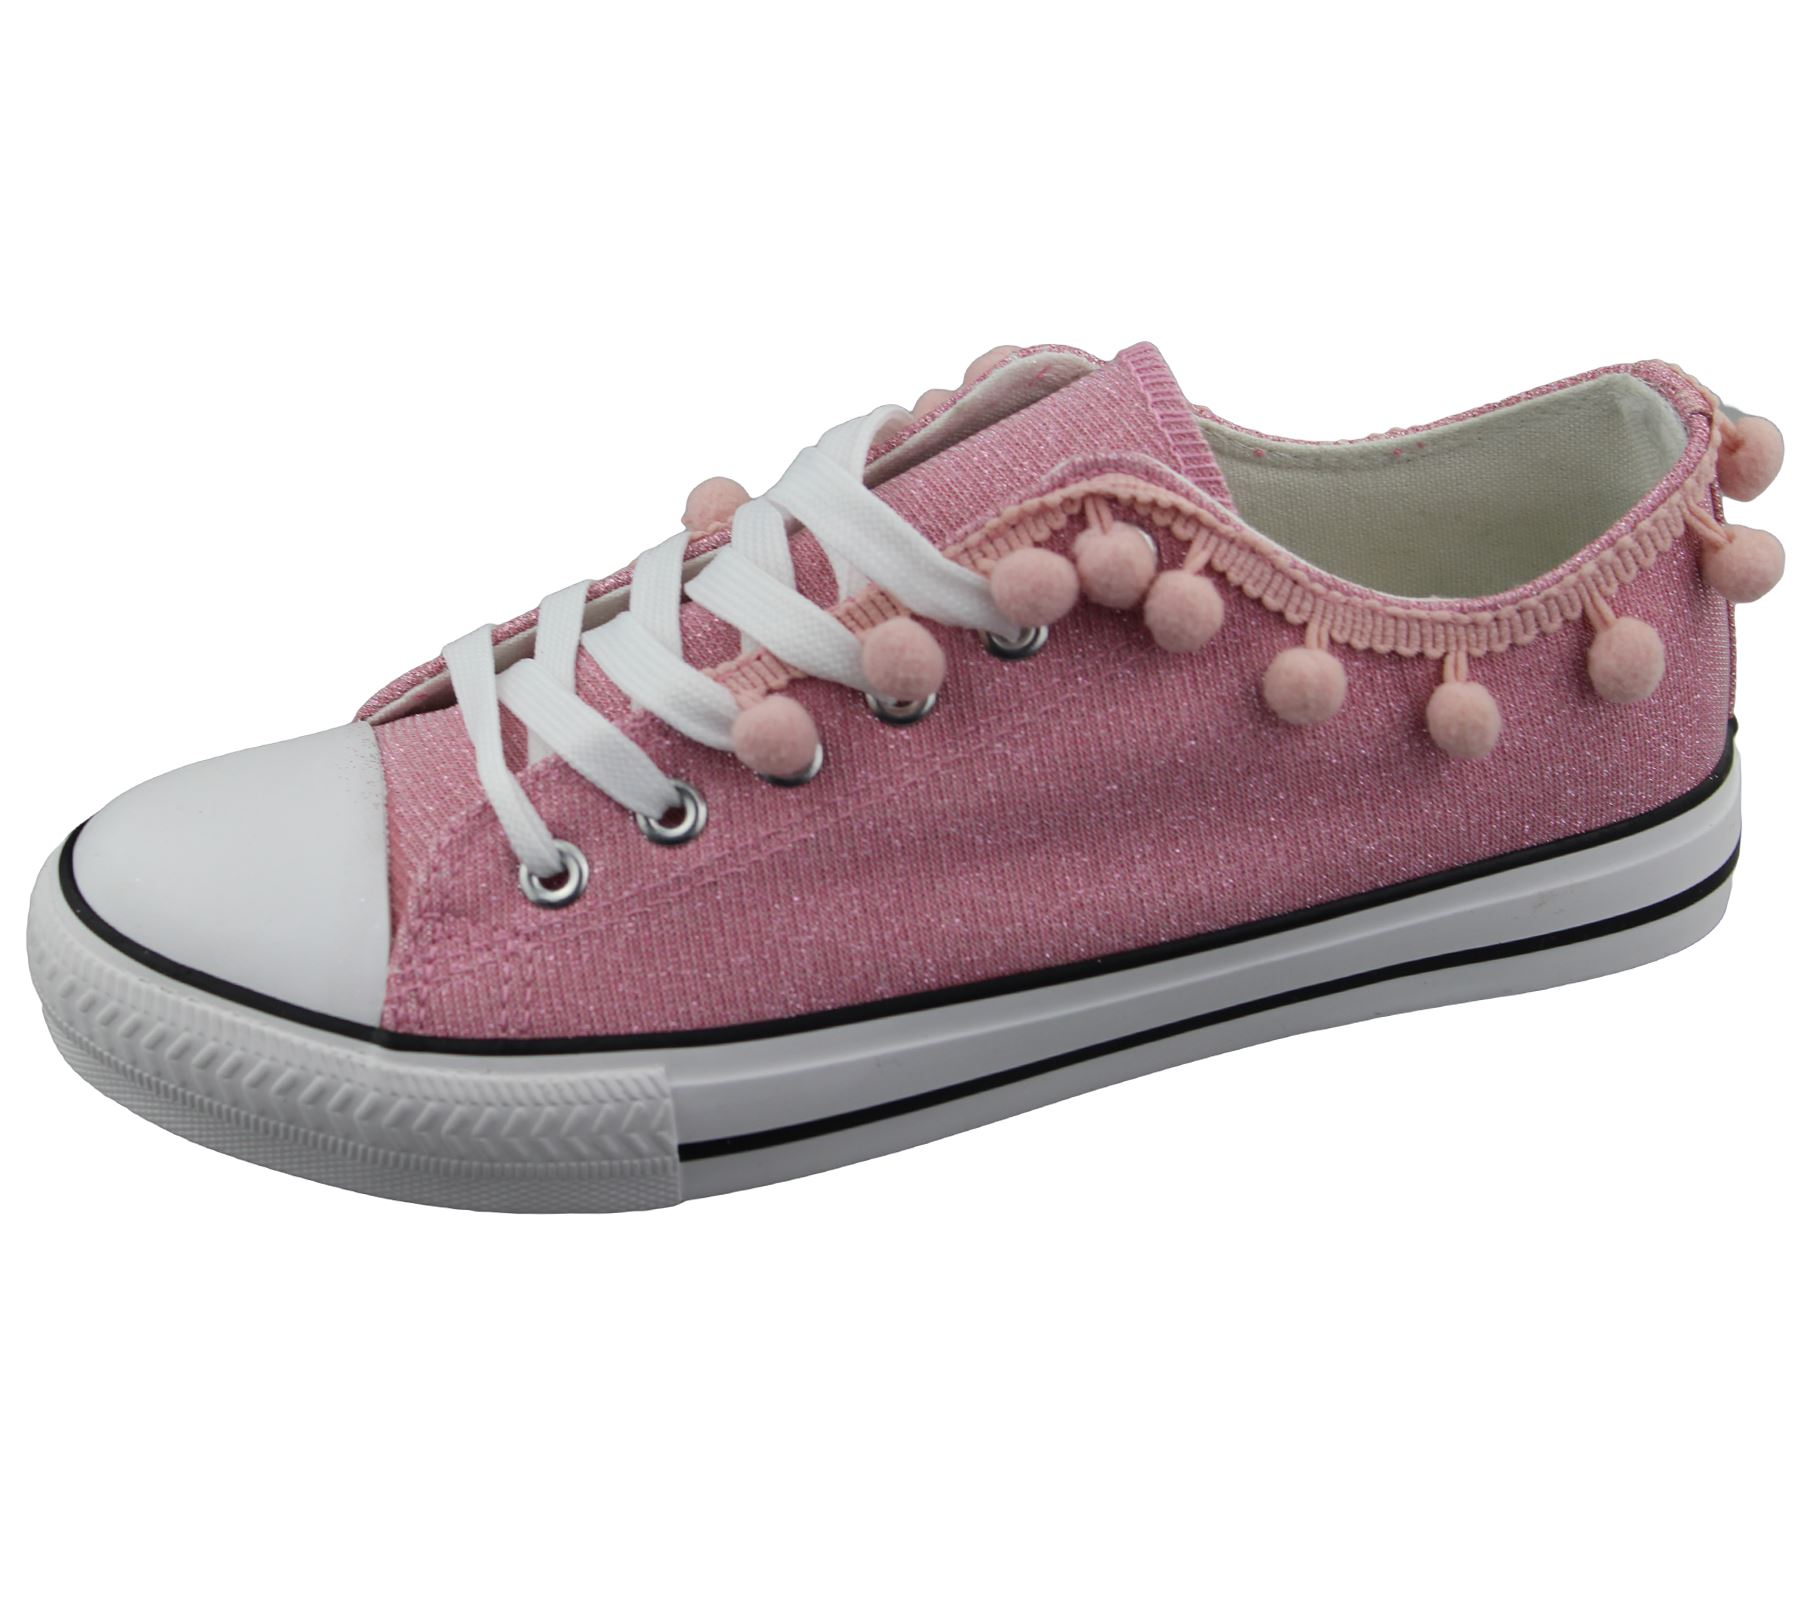 Womens-Sneakers-Flat-Pumps-Ladies-Glittered-Summer-Plimsole-Canvas-Shoes thumbnail 35